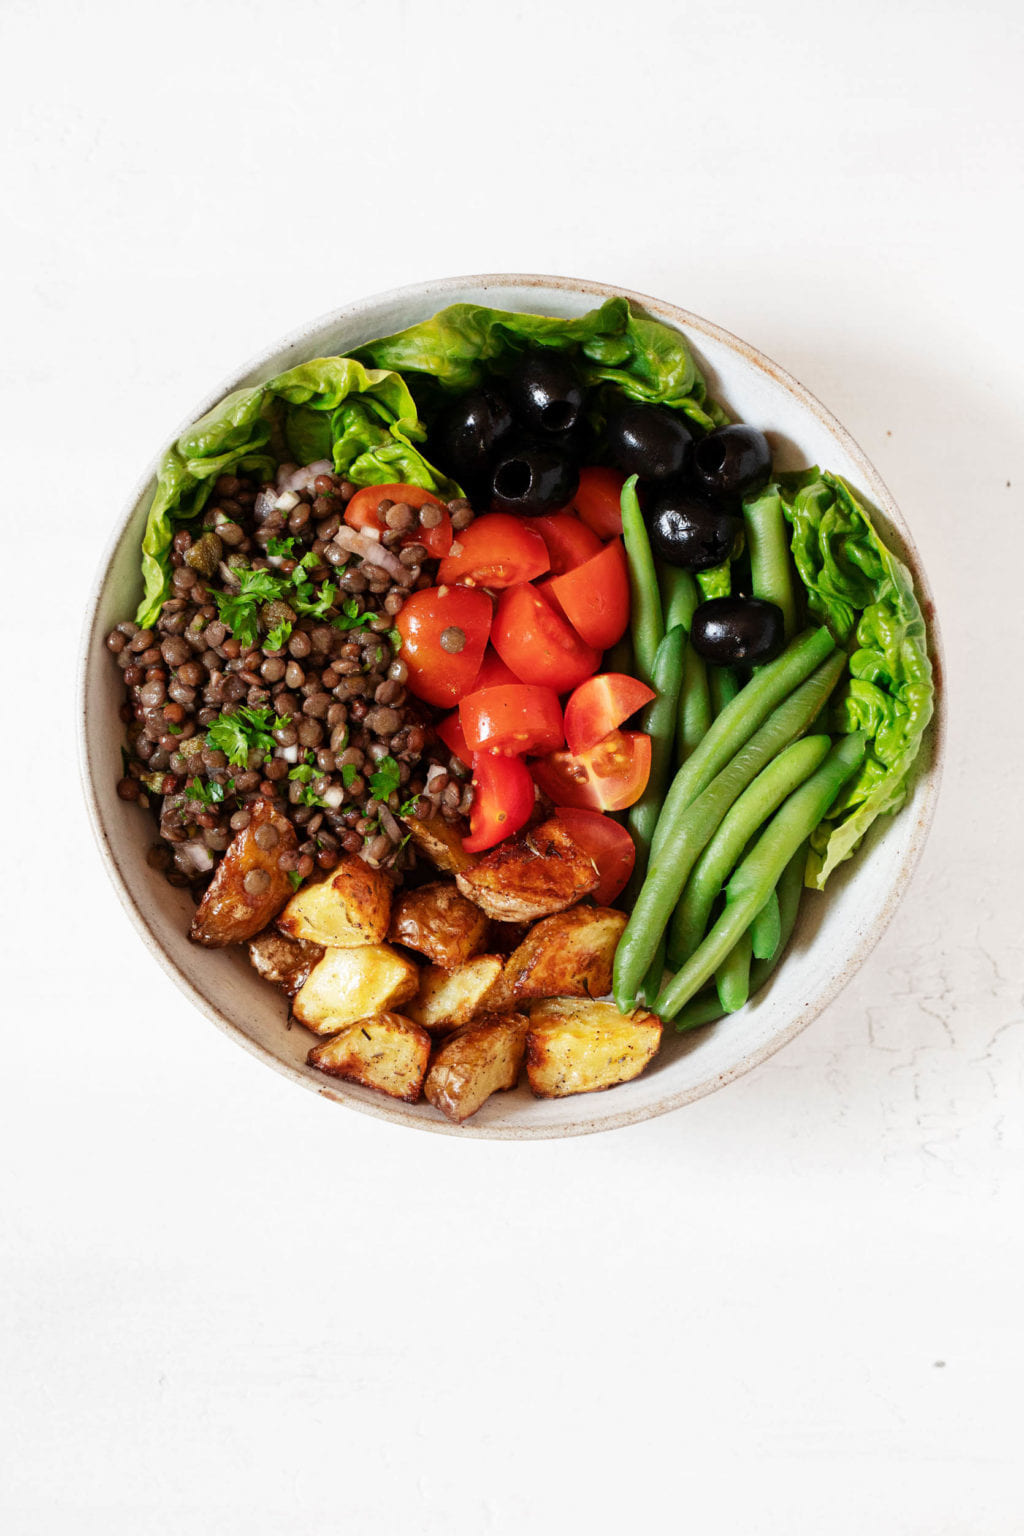 A top view of a bowl of plant-based salad made with green beans, tomatoes, olives and butter lettuce.